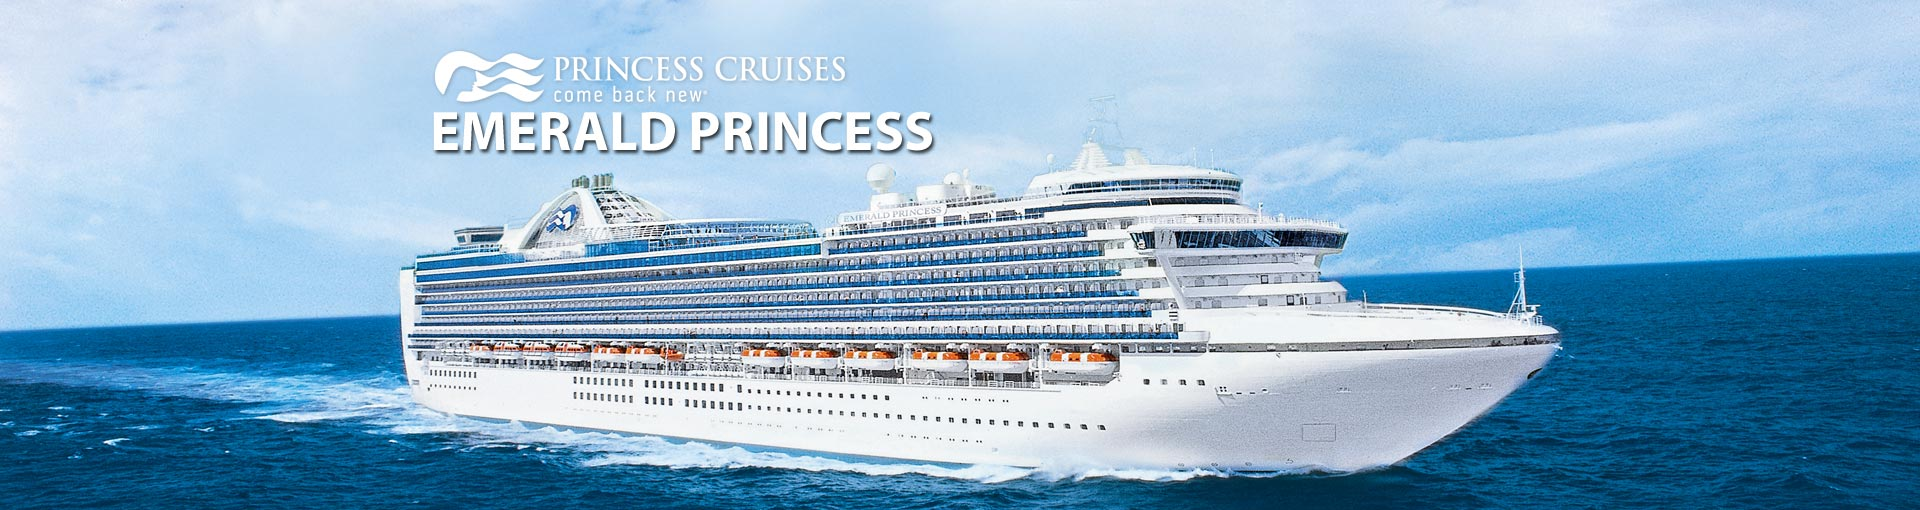 Princess Cruises Emerald Princess cruise ship